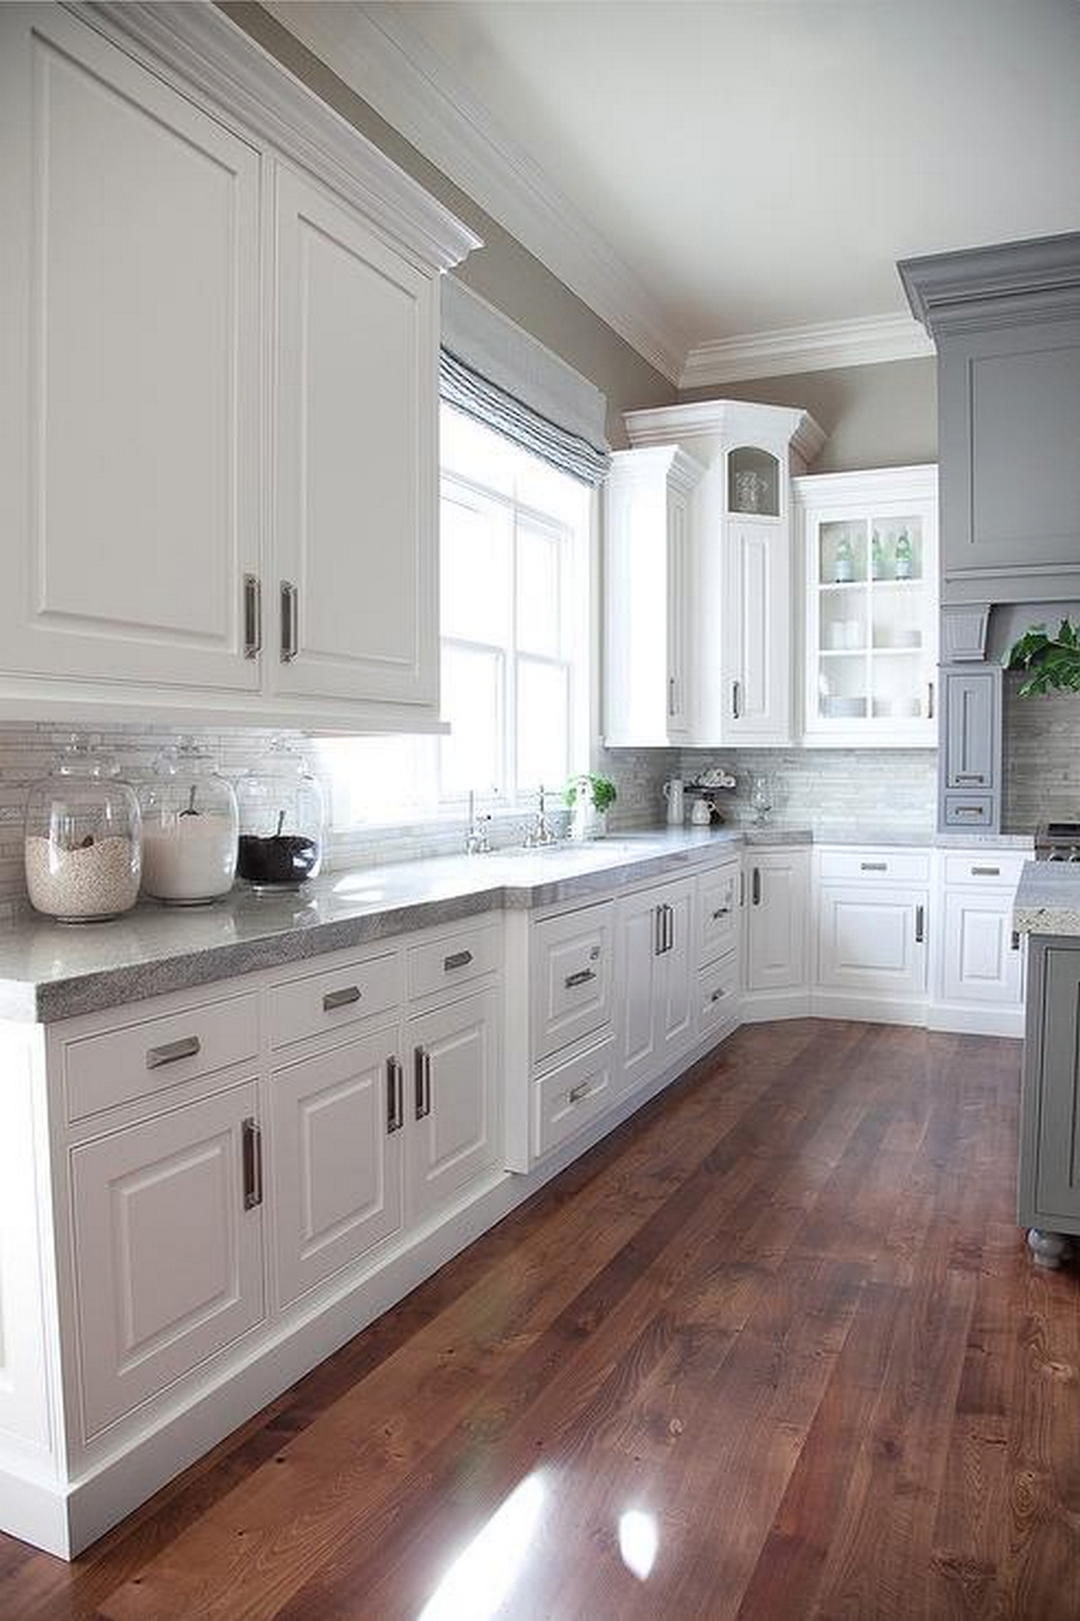 53 Pretty White Kitchen Design Ideas Kitchen Design Inspiration